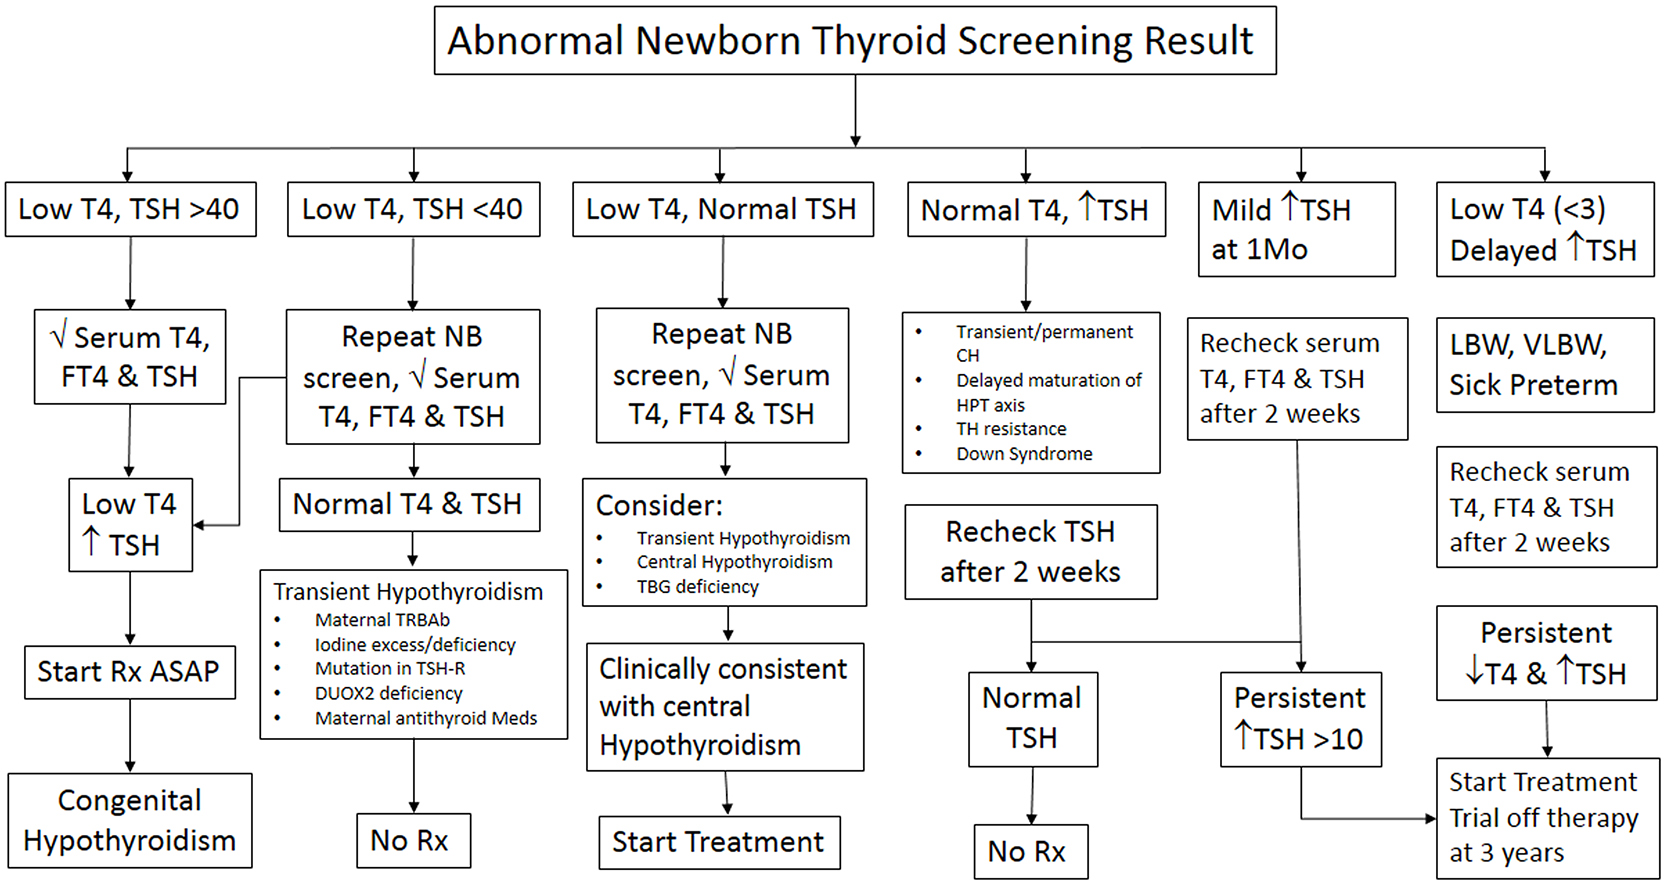 Transient Hypothyroidism In The Newborn To Treat Or Not To Treat